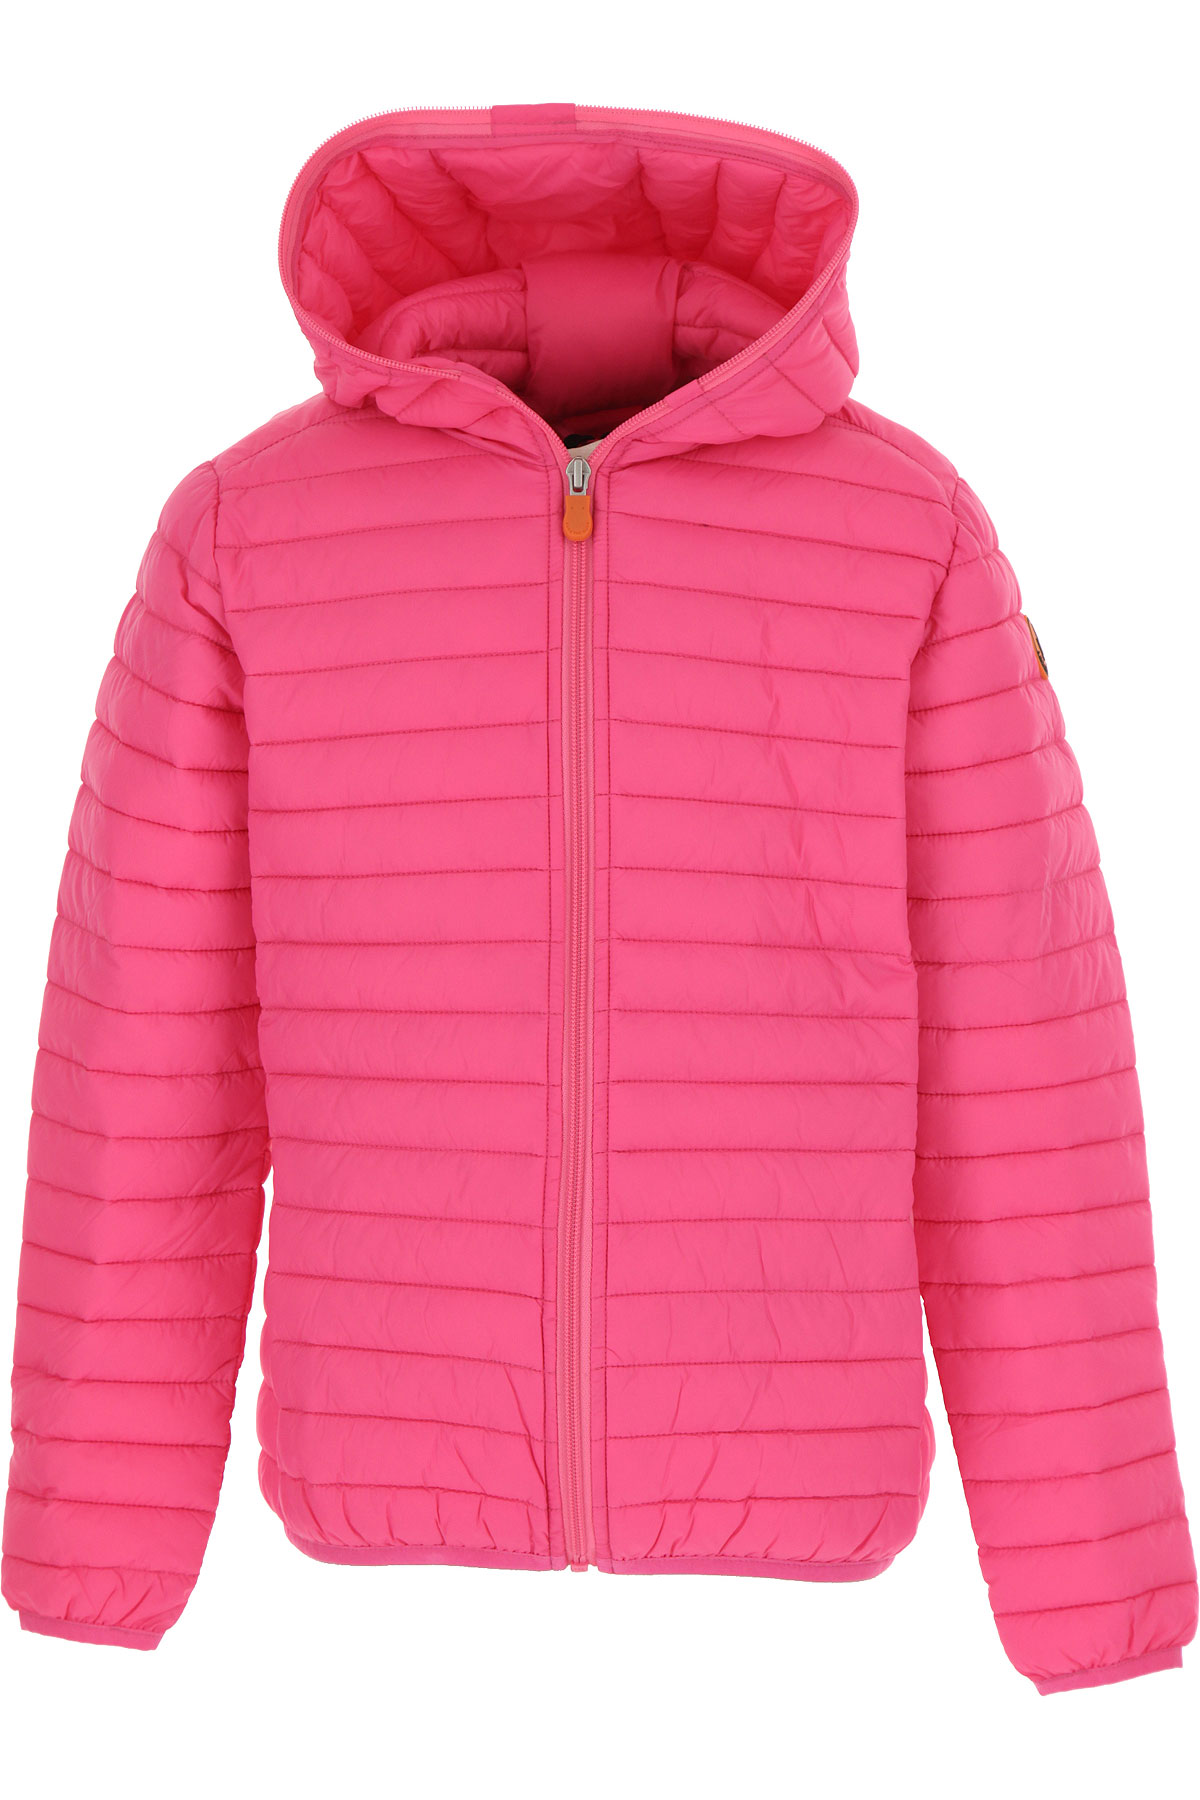 Save the Duck Girls Down Jacket for Kids, Puffer Ski Jacket On Sale, Fuchsia, polyester, 2019, 14Y 16Y 4Y 8Y